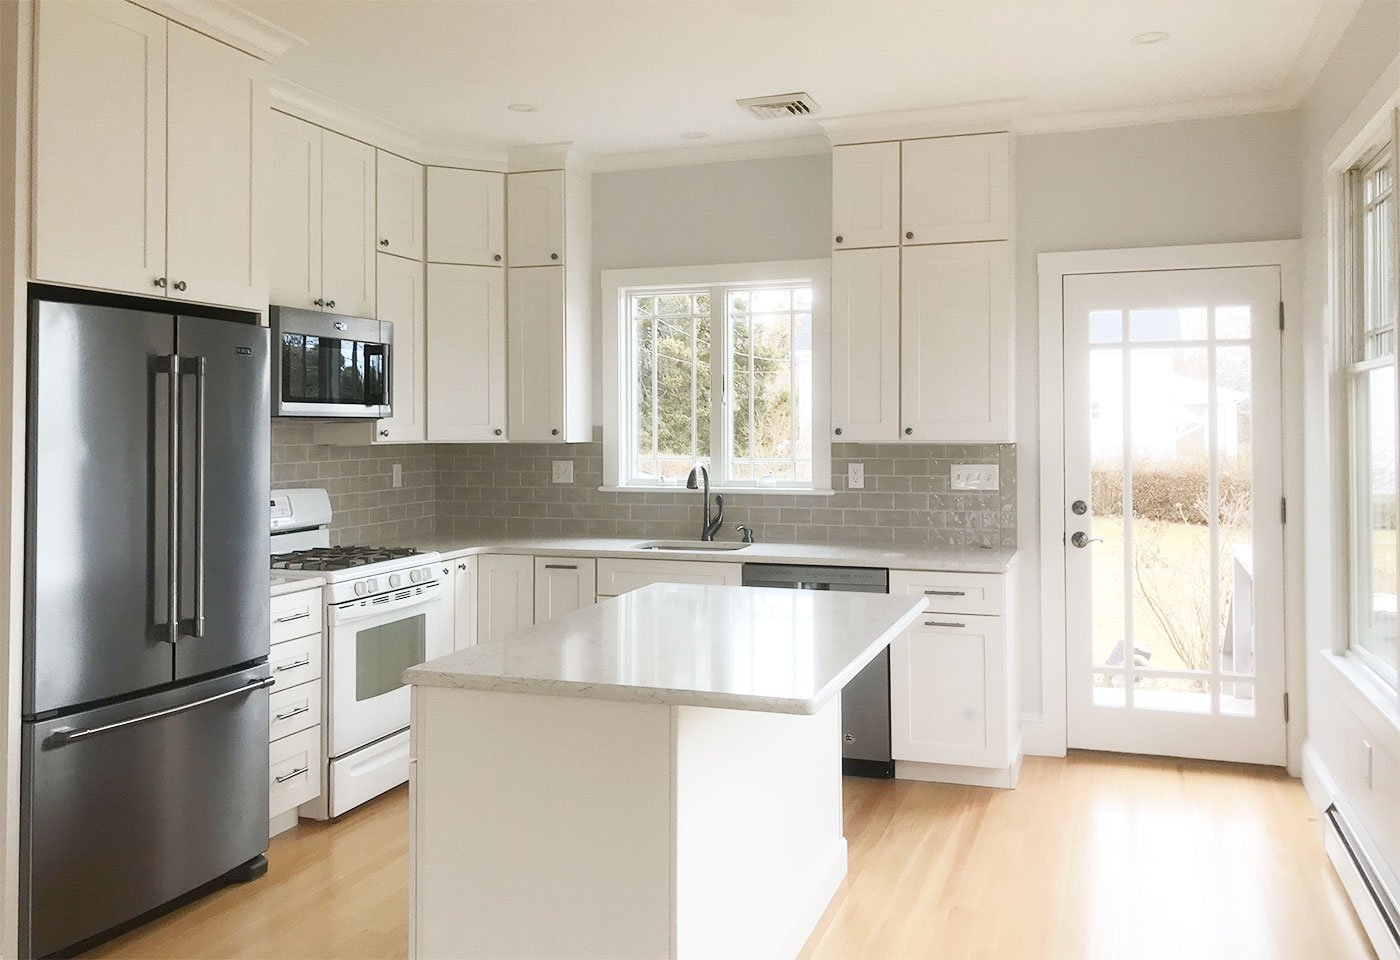 1 Home renovation by in-house design construction build firm in RI